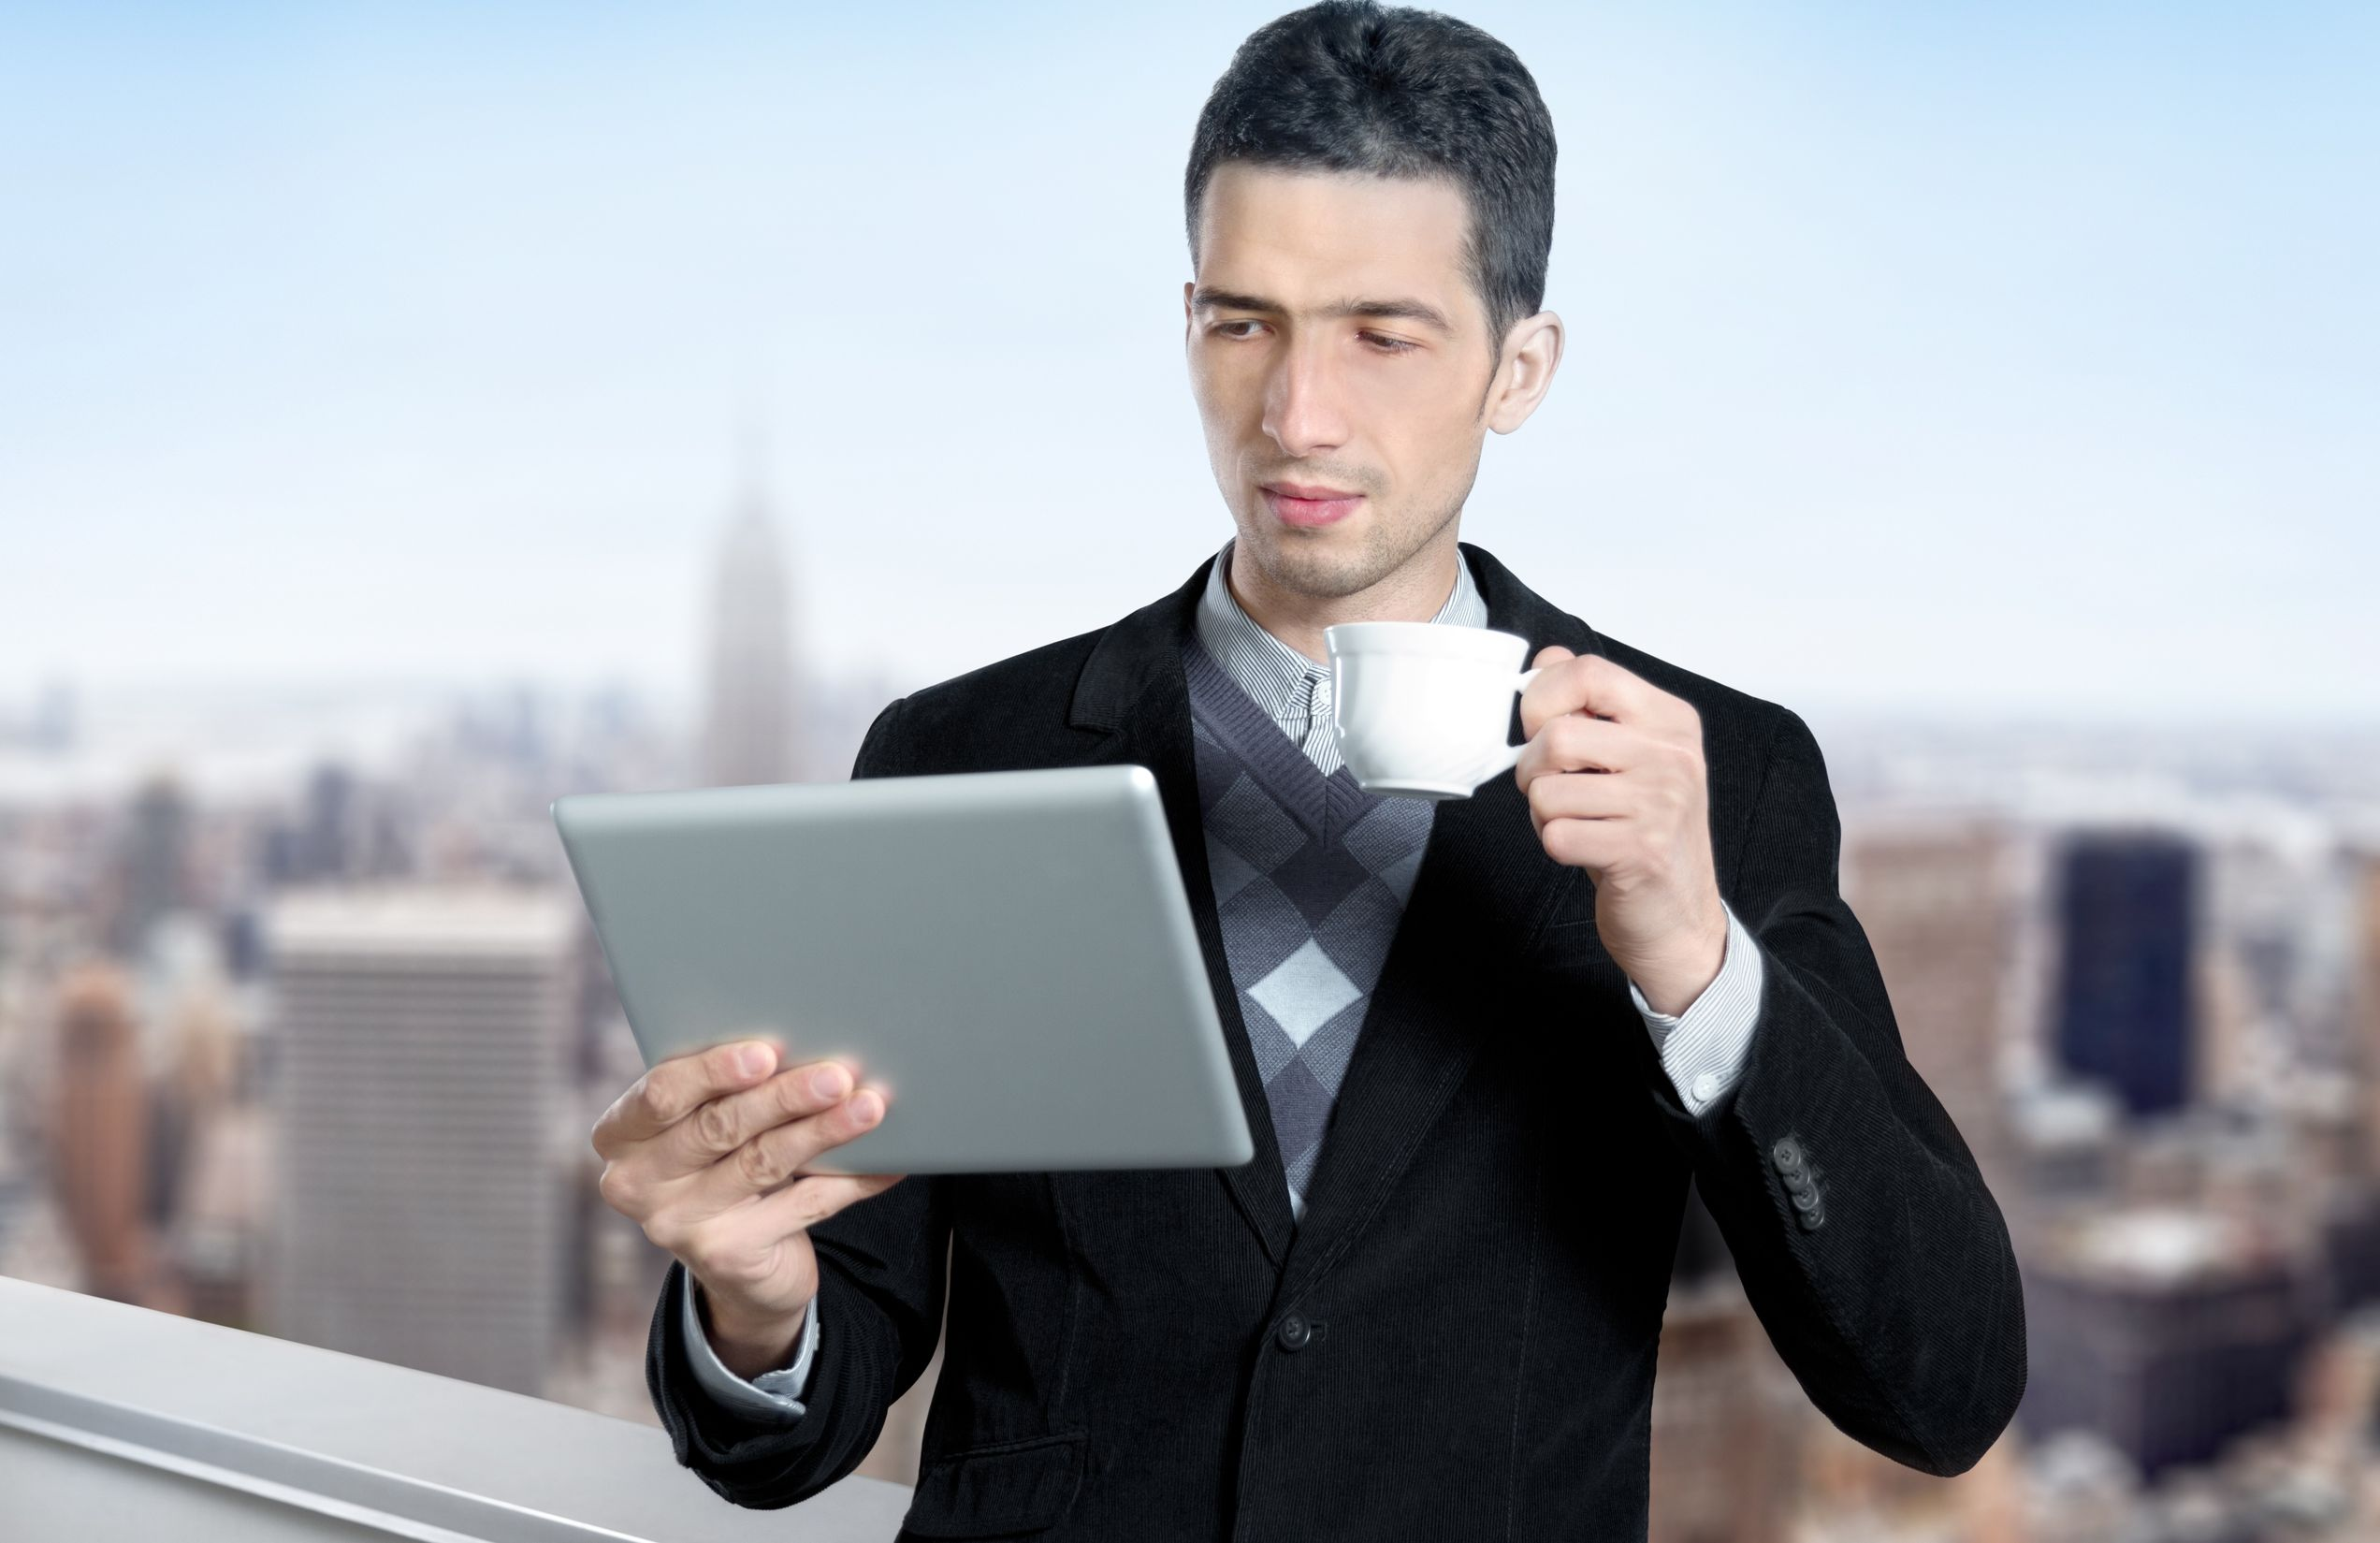 Young_businessman_with_a_cup_of_coffee_uses_a_digital_tablet.jpg